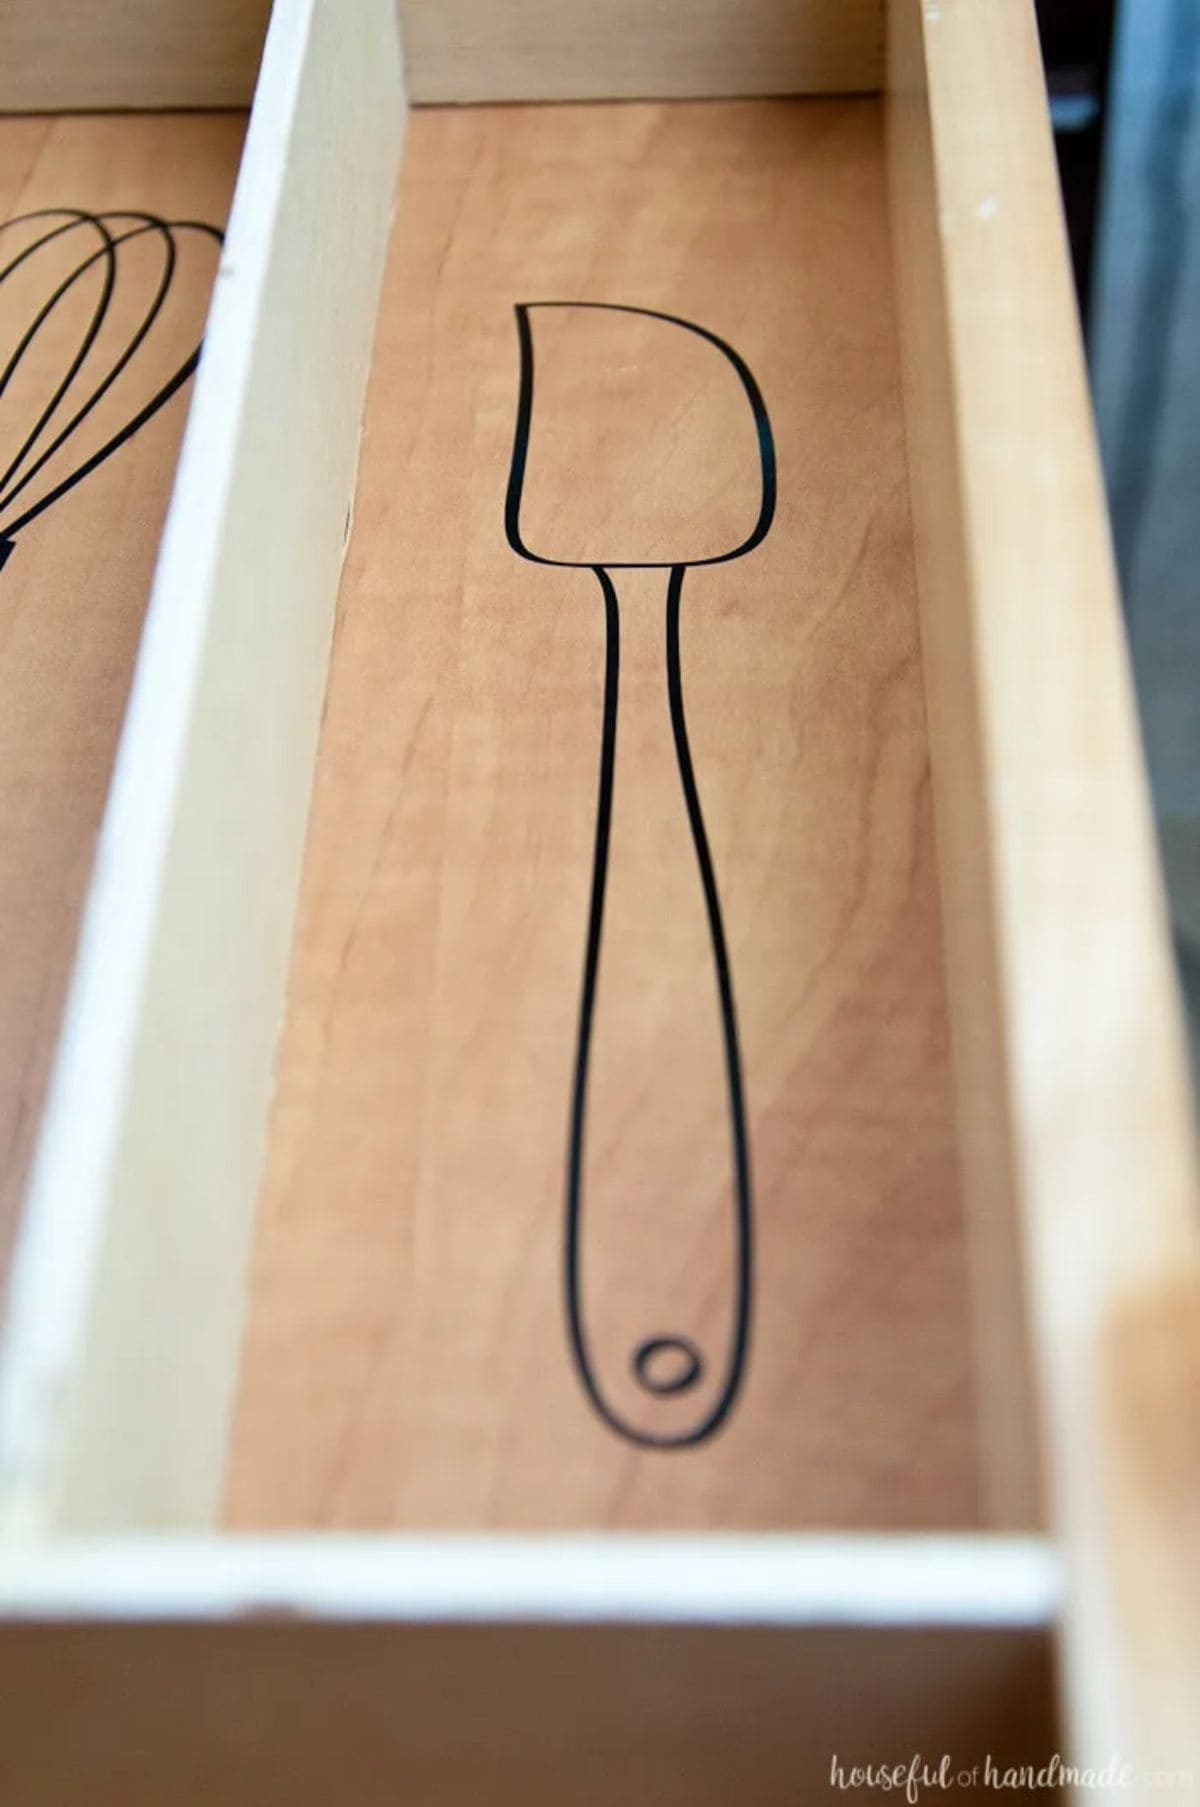 A close up of a section of a drawer with wooden dividers. There is a black pen drawing of a spatula on the bottom of the drawer